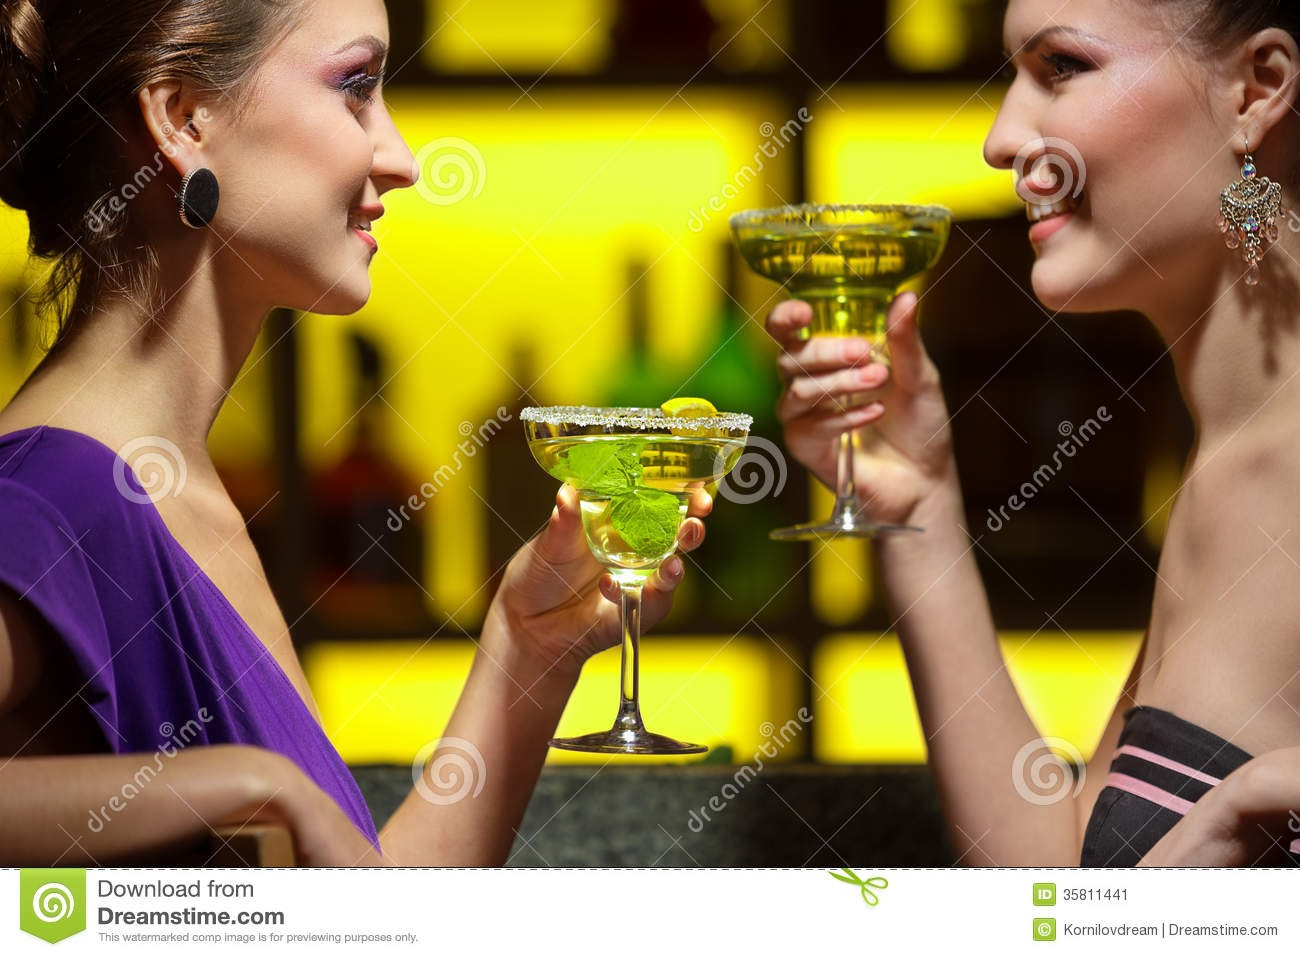 2. Timing is everything. If you're having casual drinks or dinner with your friends before a big night out, wait to put on your lipstick. You won't constantly be worrying about messing it up while you eat (which is the worst)